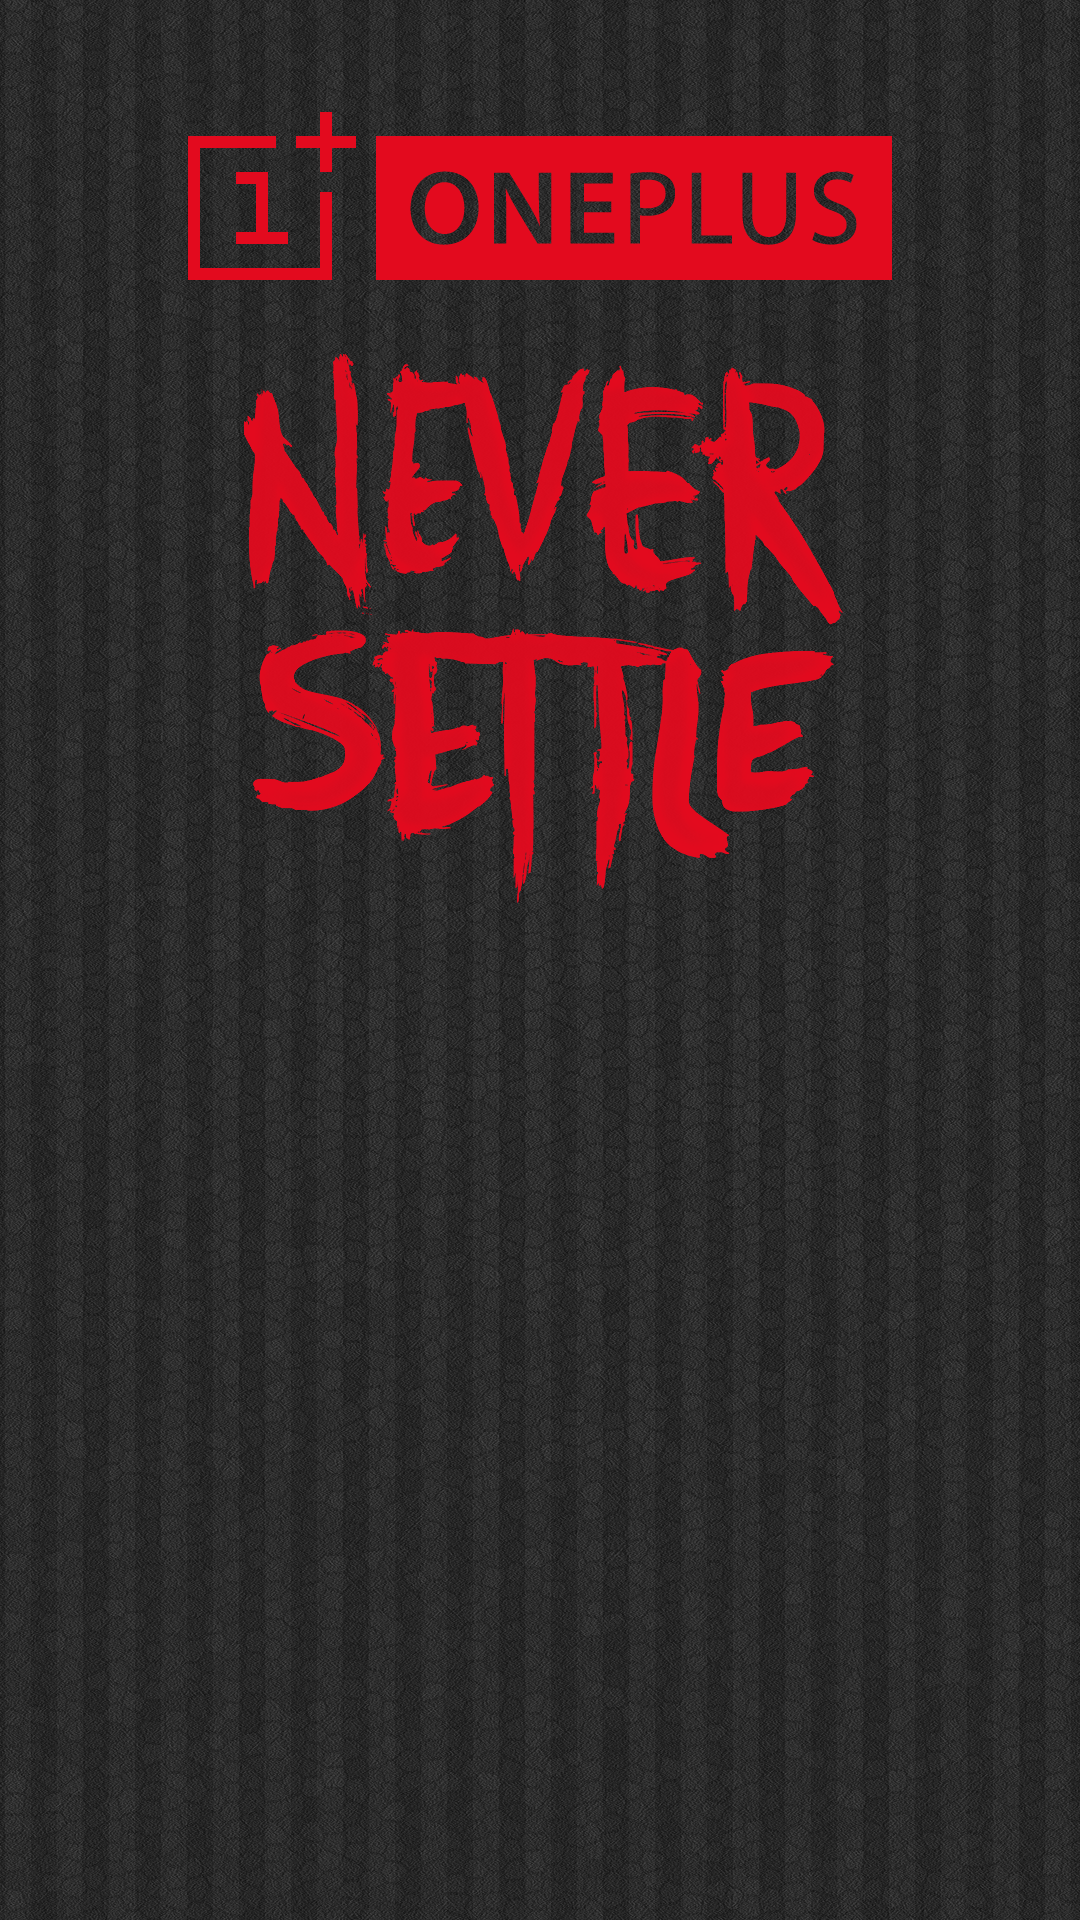 NeverSettle wallpapers   OnePlus Forums 1080x1920